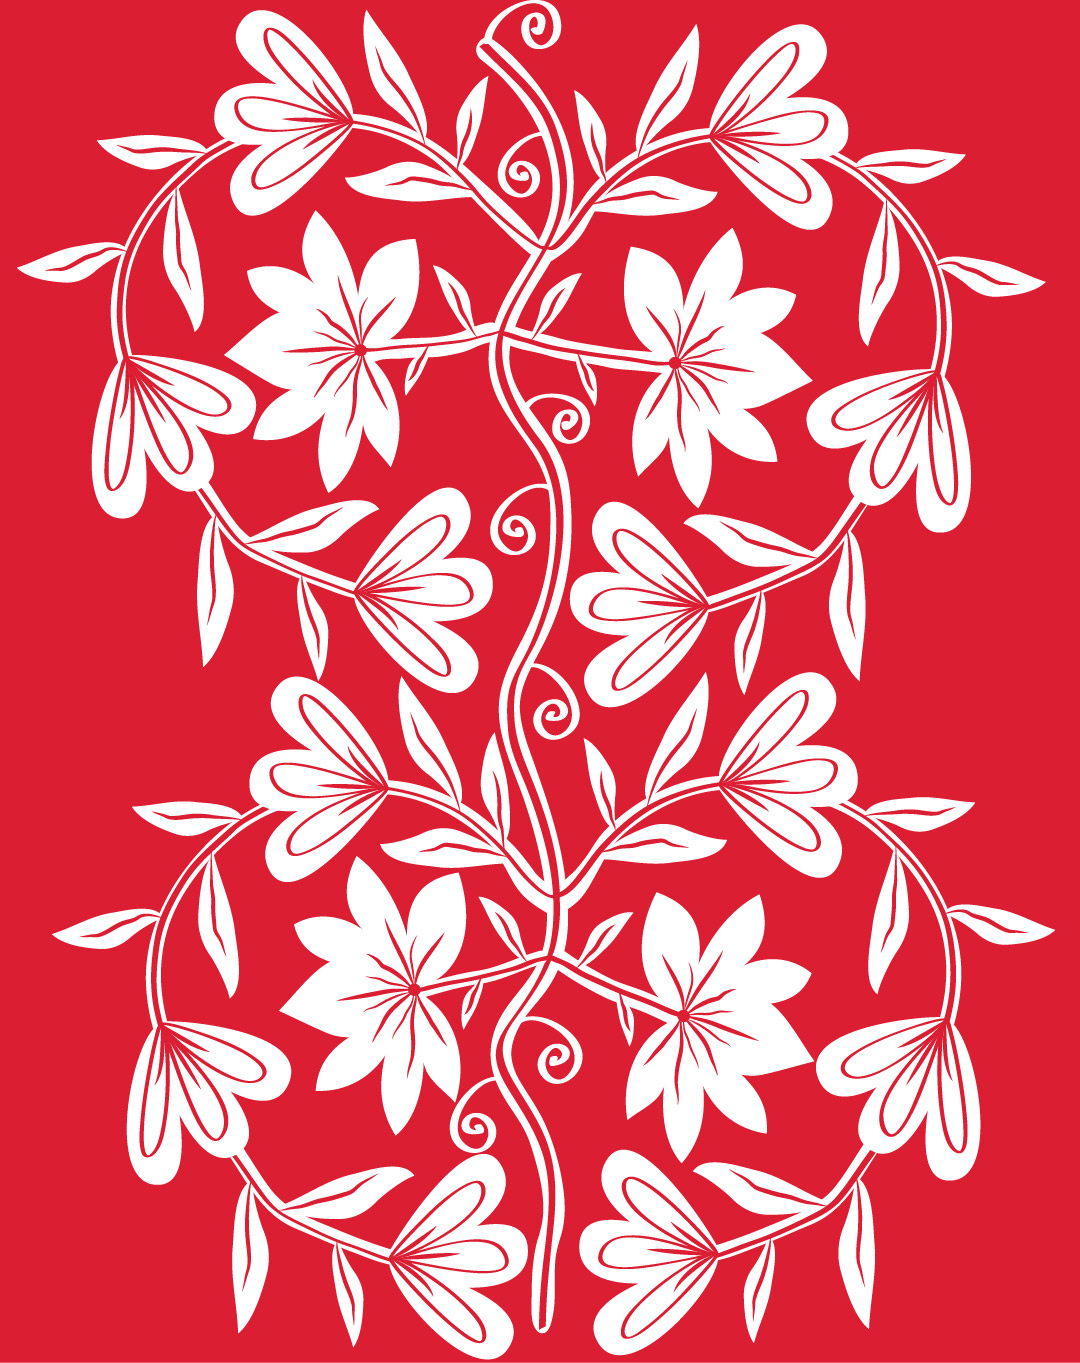 Chinese paper cutting inspired fabric design theoriginalthread chinese paper cutting flowers society6 tshirt mightylinksfo